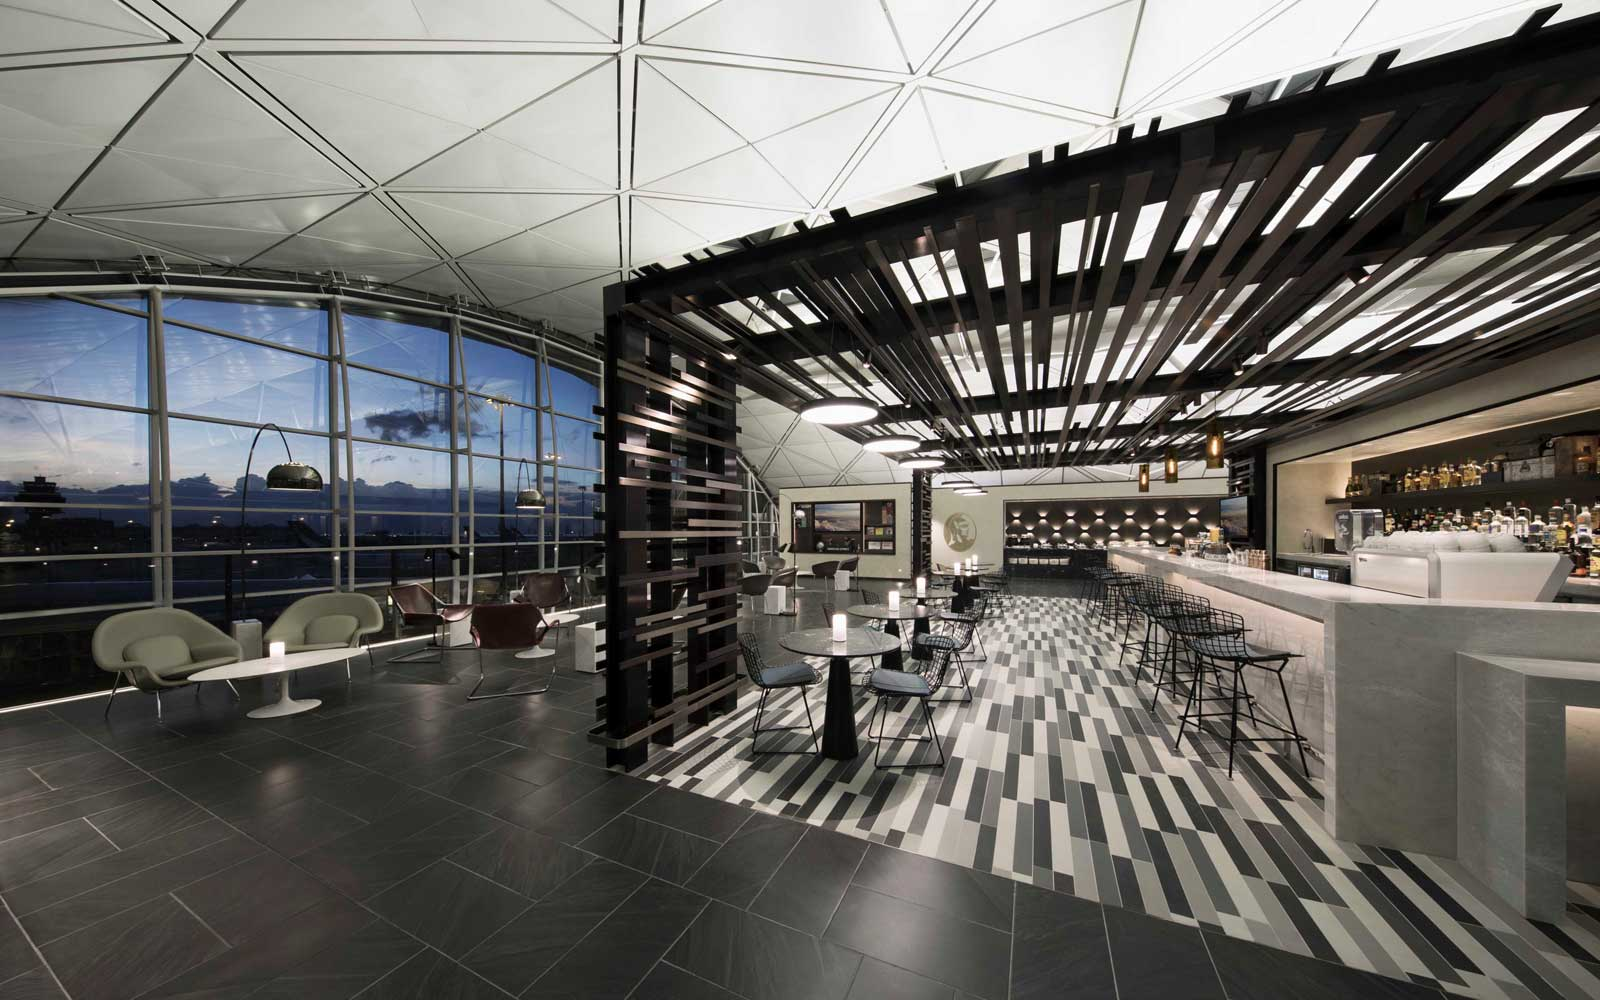 American Express Centurion Lounge — The Luxury Airport Lounge We All Want Access To